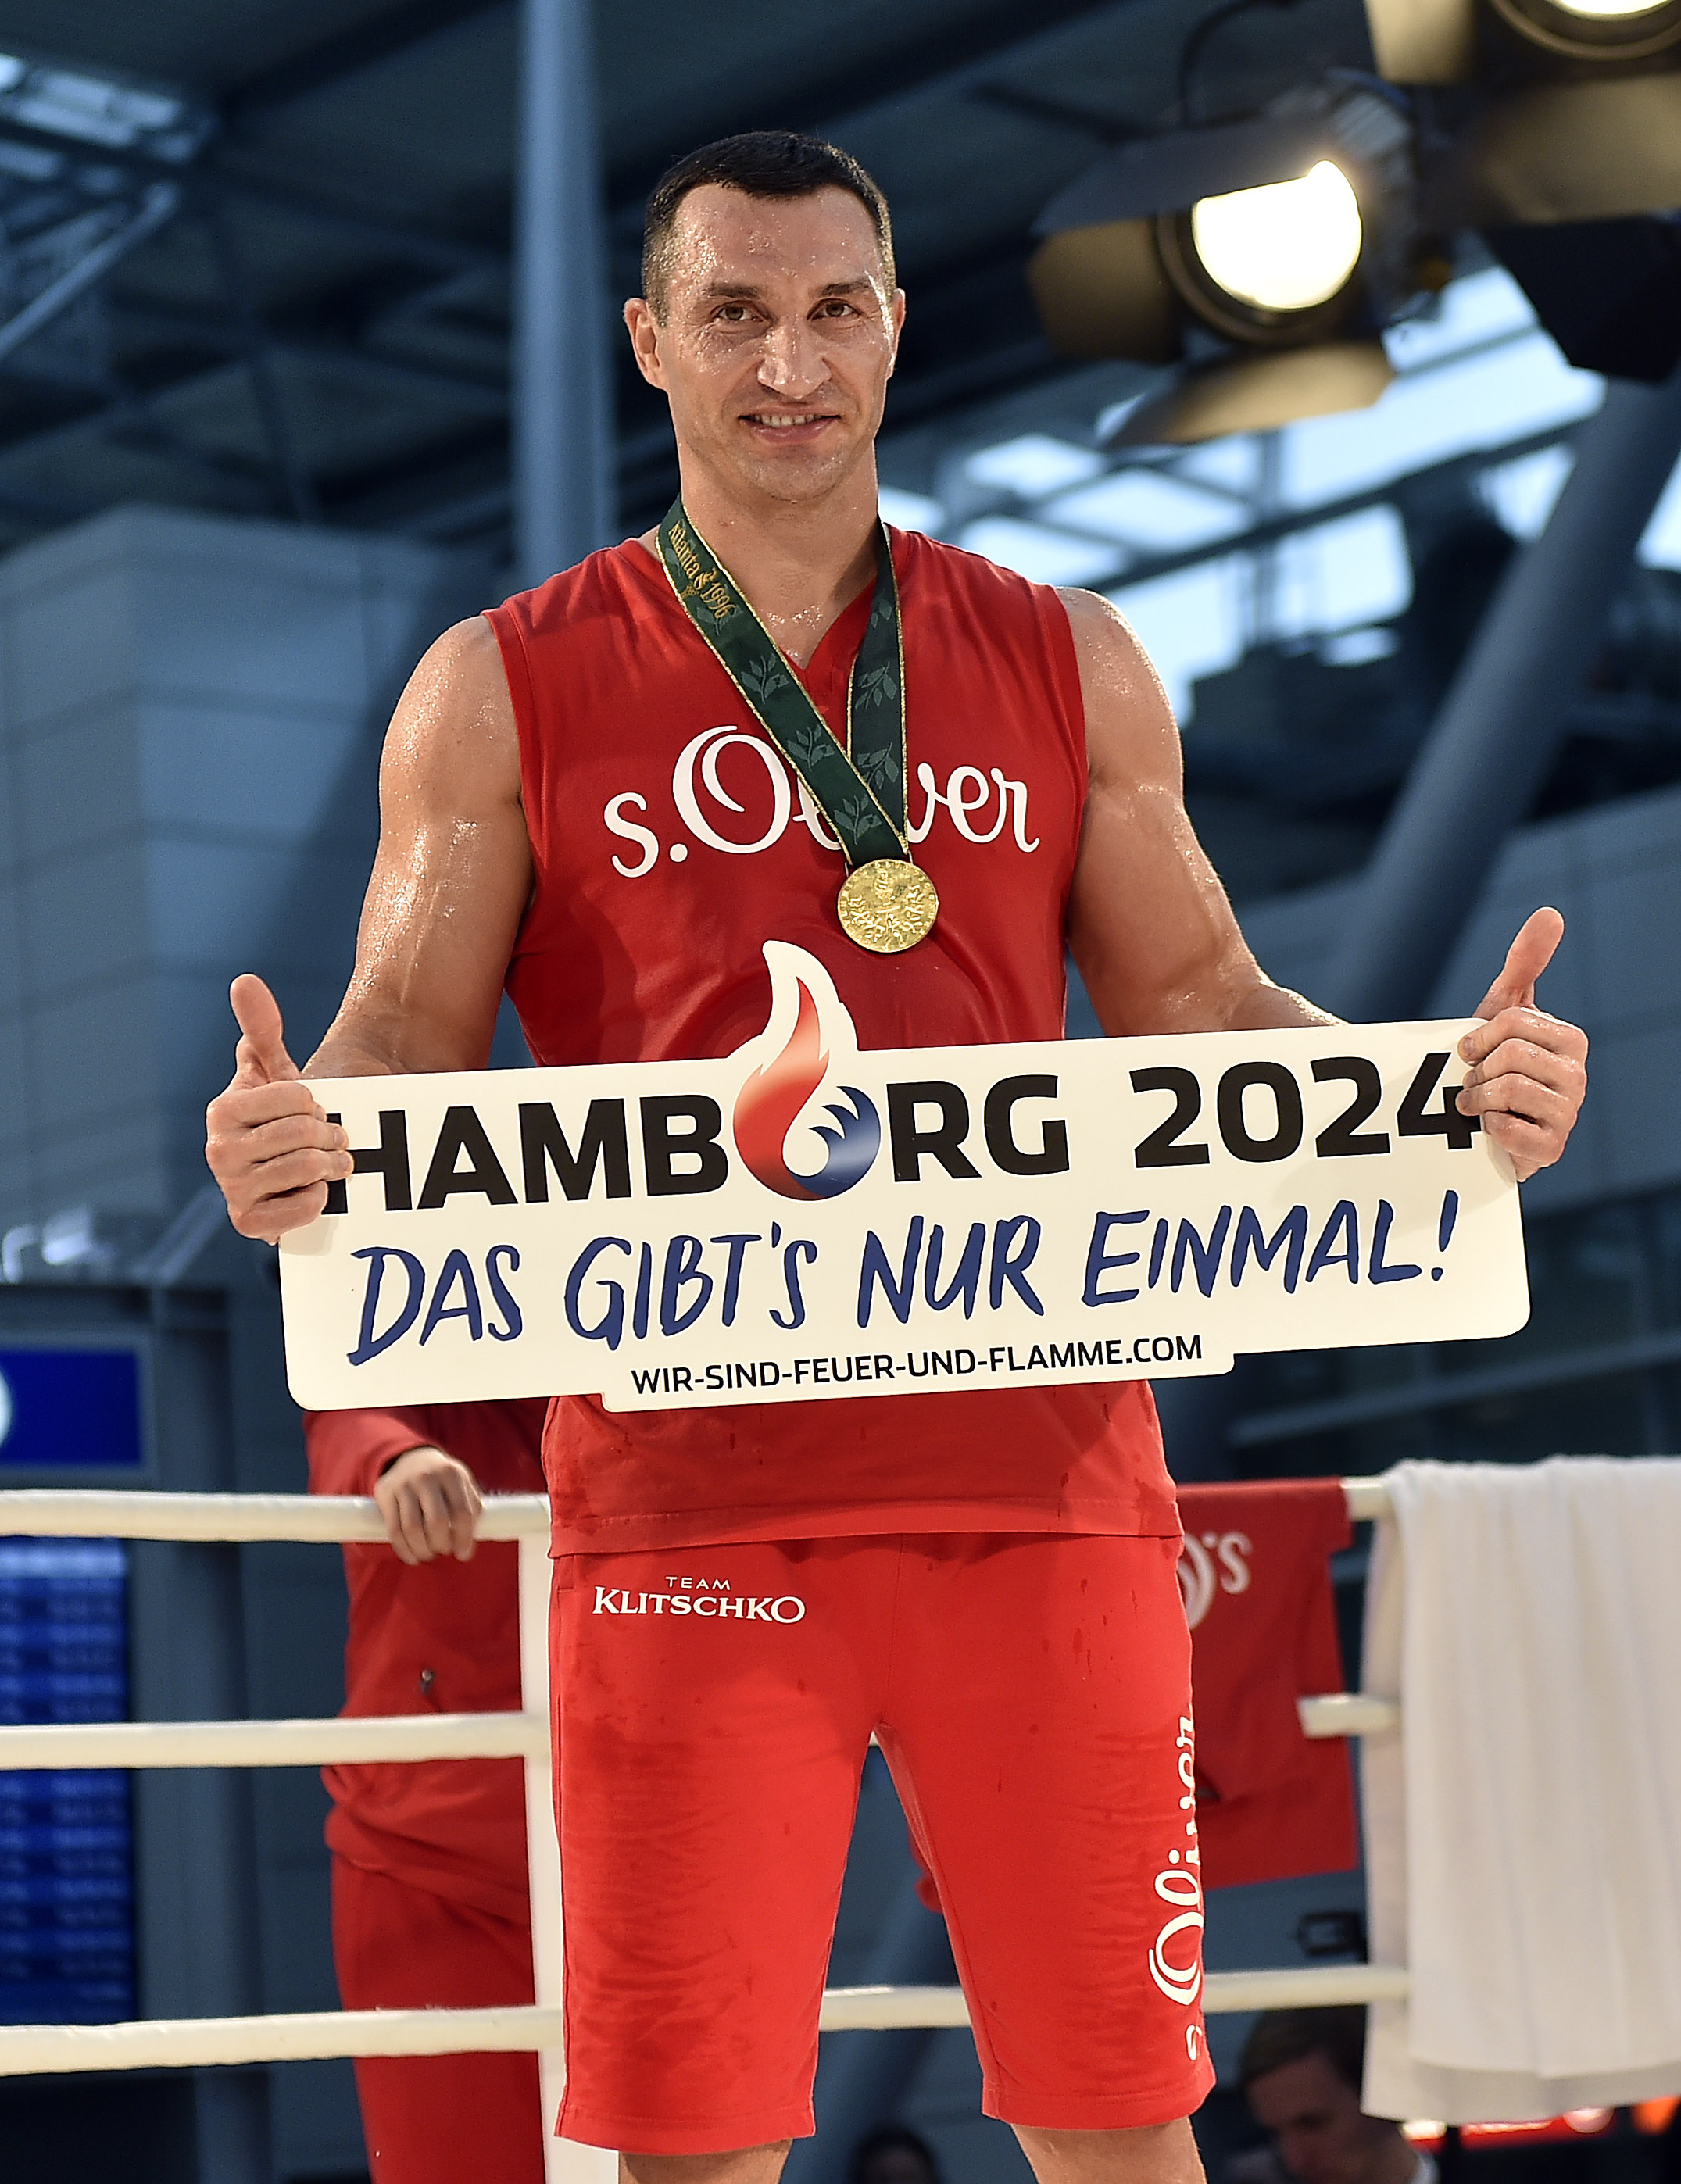 Ukrainian World boxing champion Wladimir Klitschko promotes Hamburg's bid for Olympic Games in 2024 during a public training session at the airport in Duesseldorf, Germany, prior his heavyweight boxing fight against challenger Tyson Fury from Britain, Wed